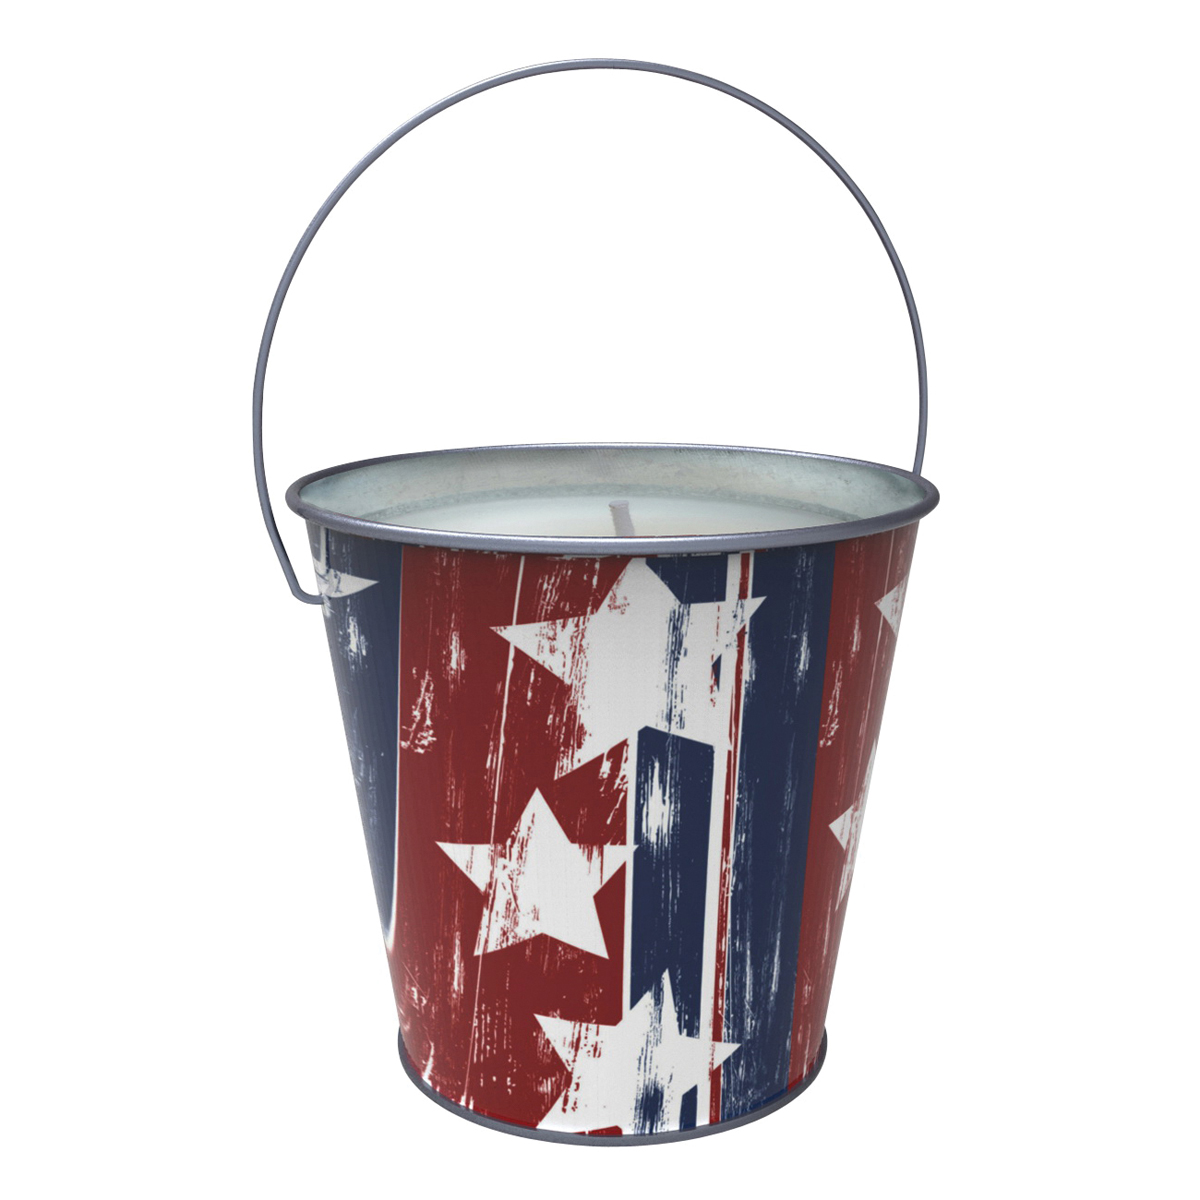 Picture of Seasonal Trends Y2563 Candle with Handle Bucket, Bucket, Printed Stars and Stripes, Citronella, Carton